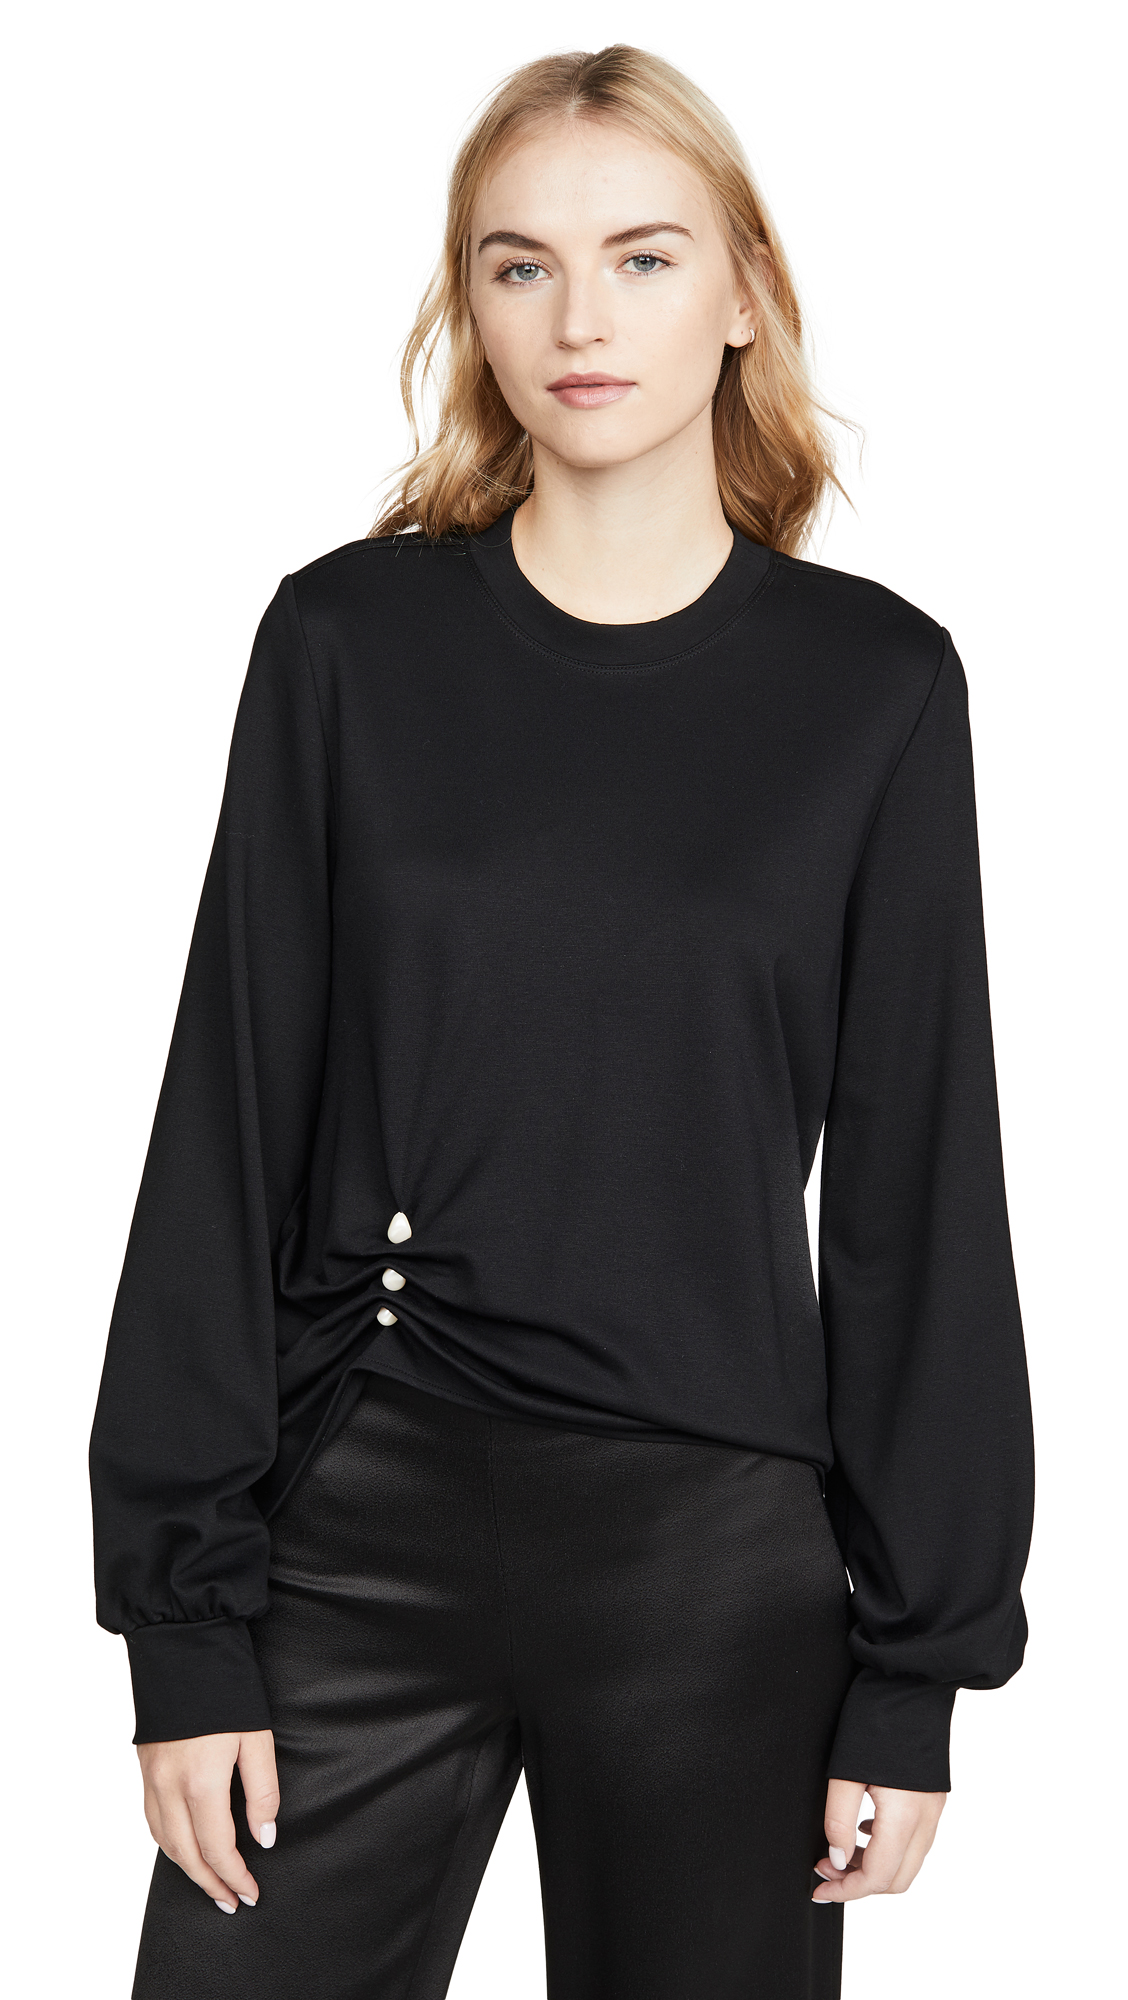 Adeam Imitation Pearl Sweatshirt - 60% Off Sale